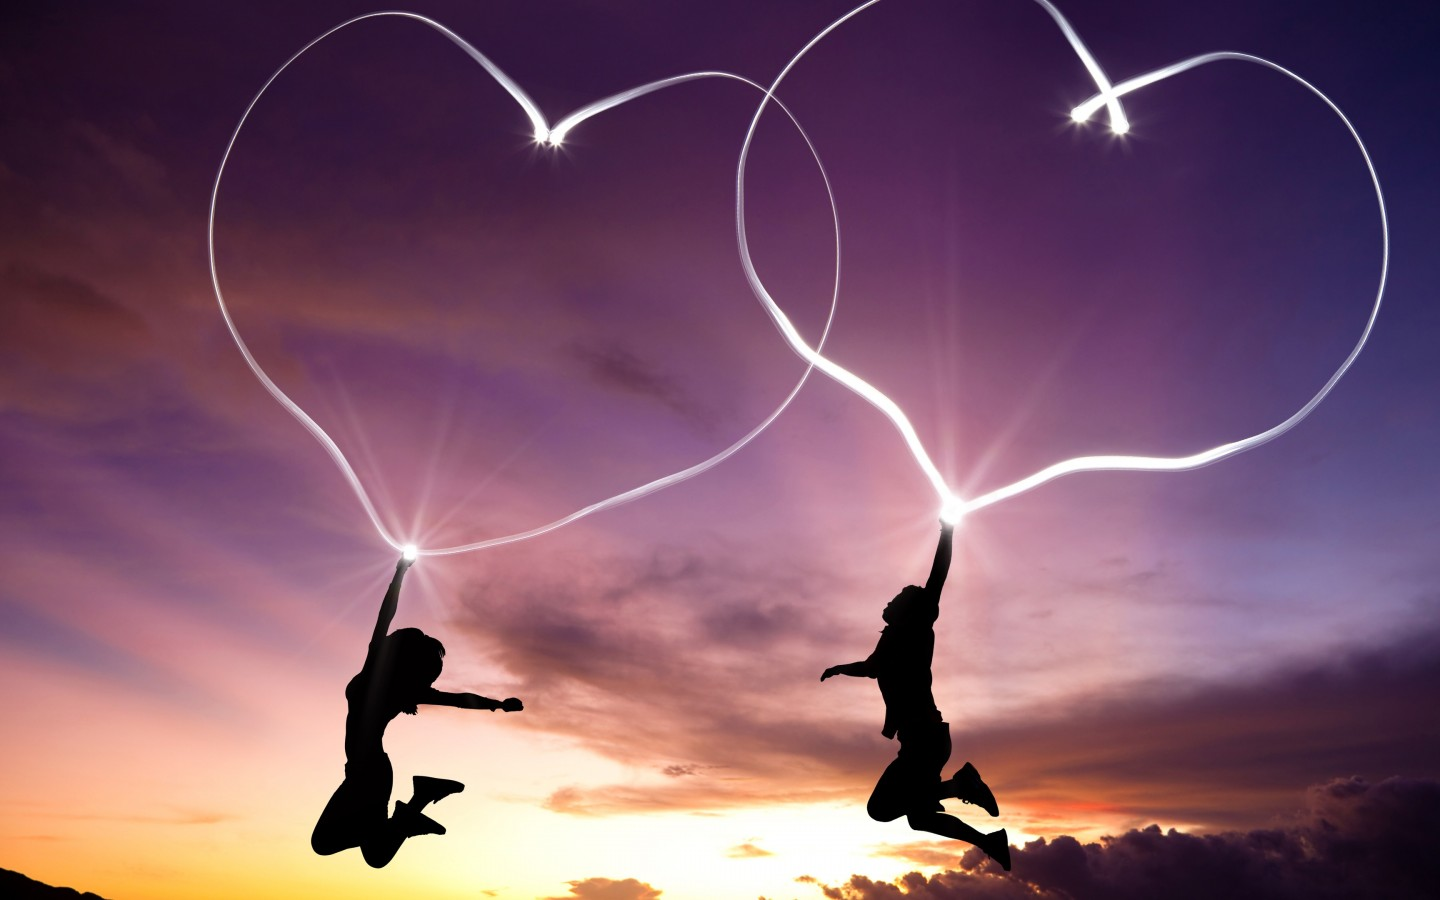 Free Download romantic couple Love Wallpaper for Desktop and Mobiles